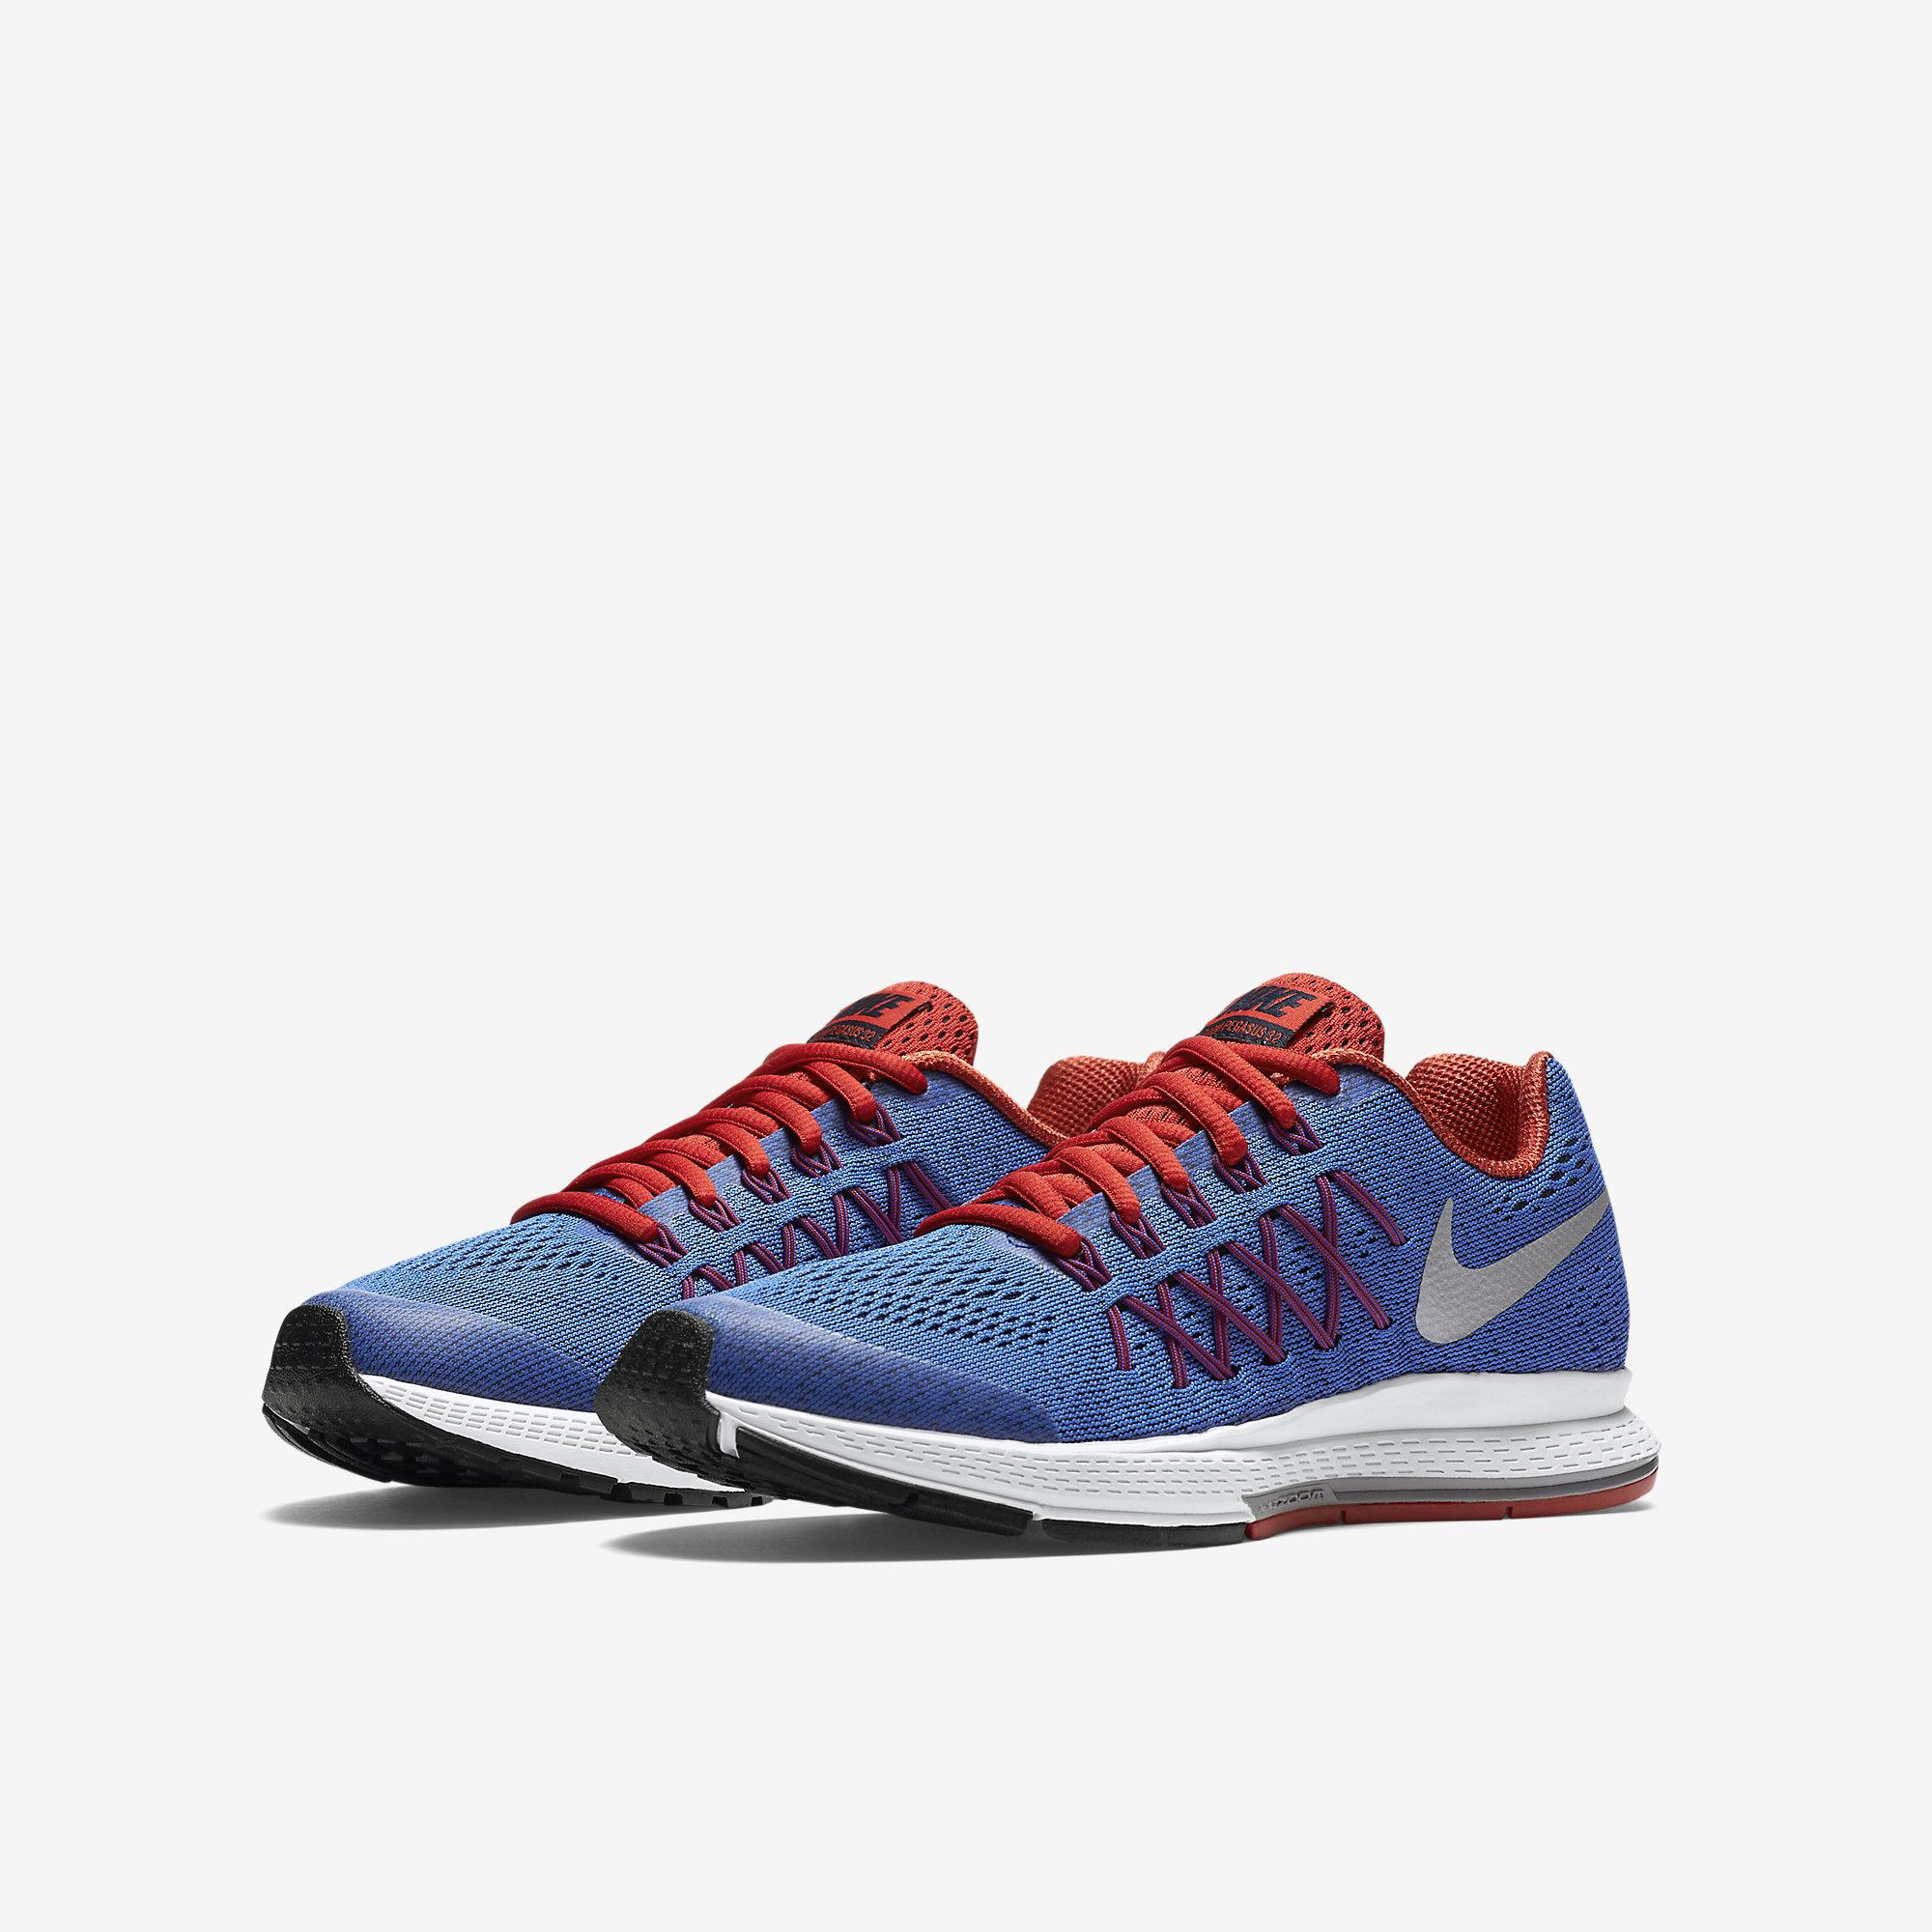 nike boys air zoom pegasus 32 running shoes blue red. Black Bedroom Furniture Sets. Home Design Ideas